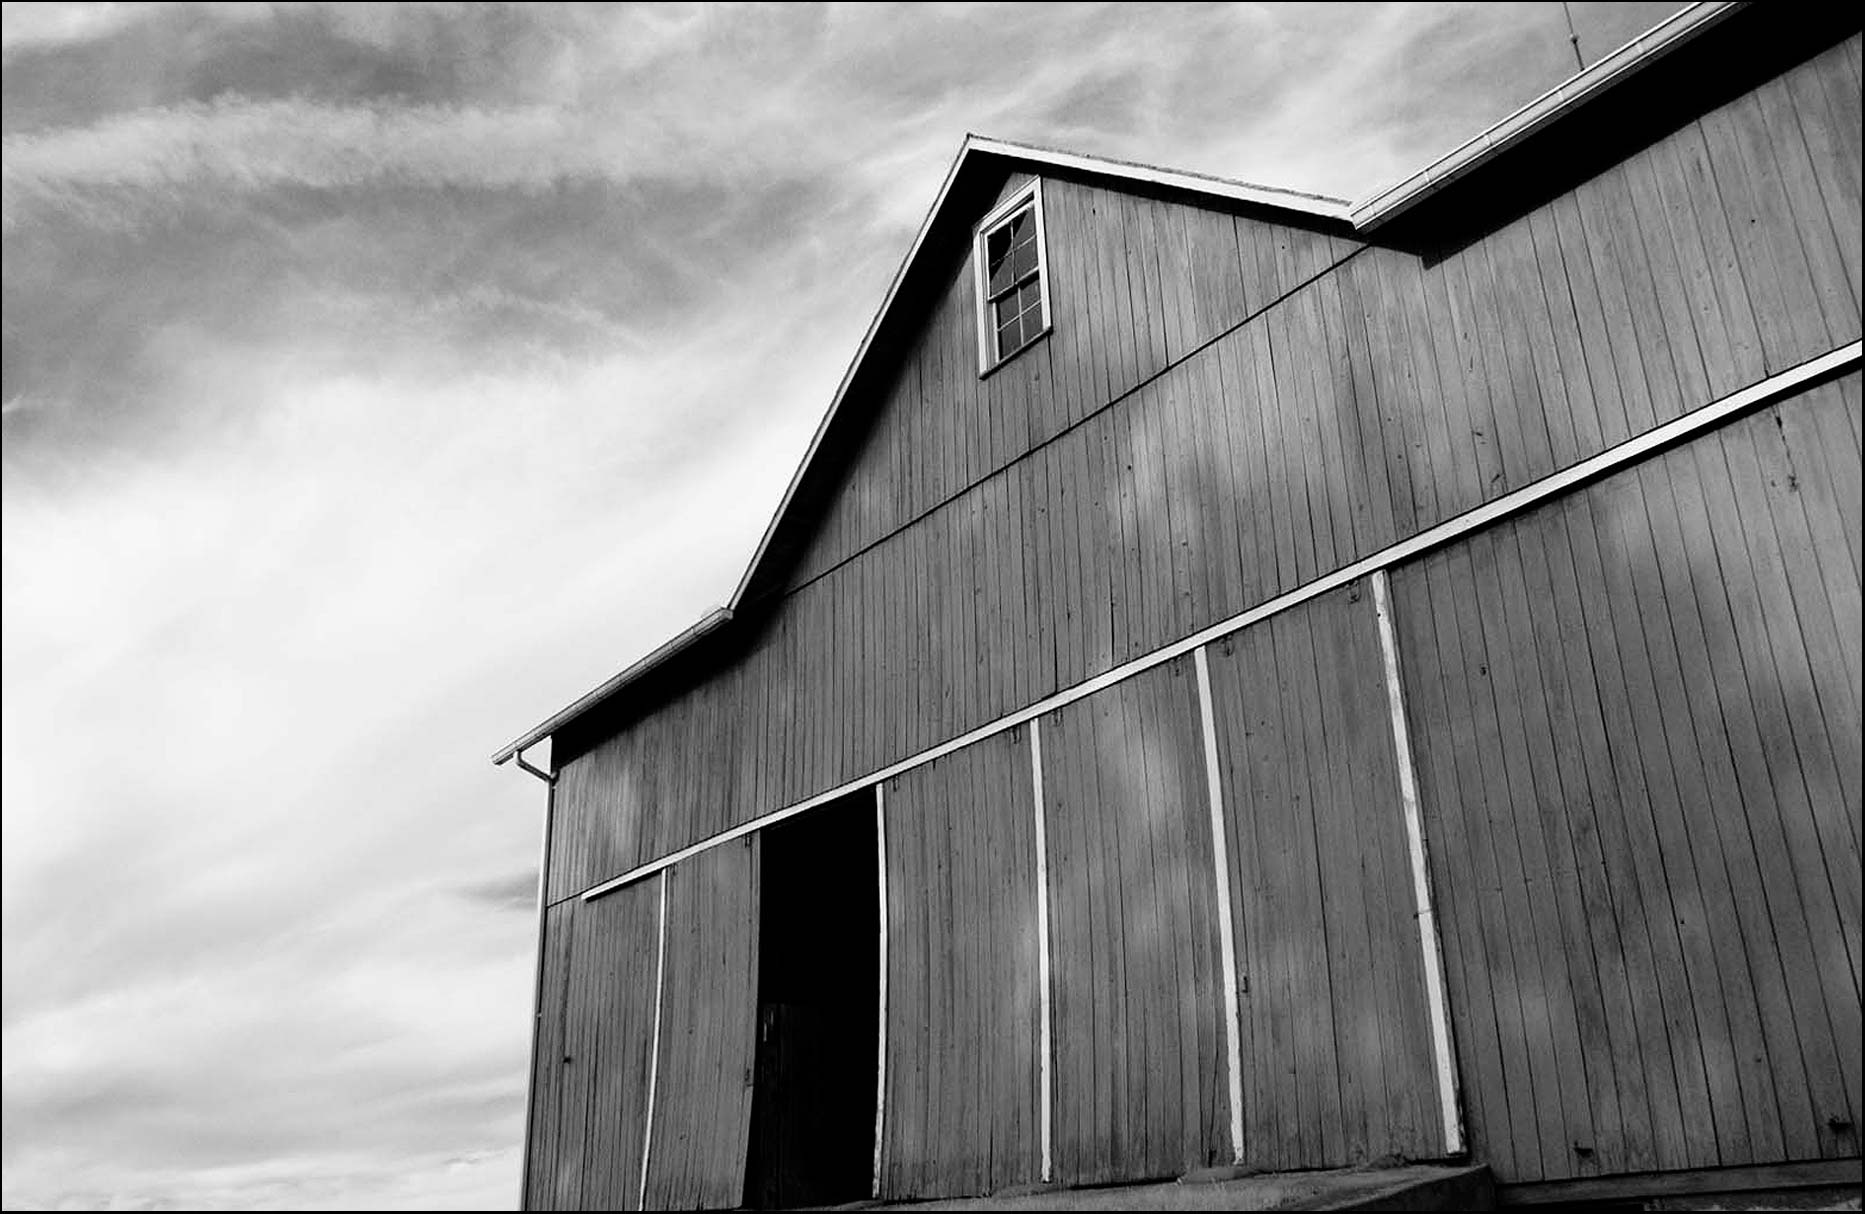 Barn shot in Black and white infrared